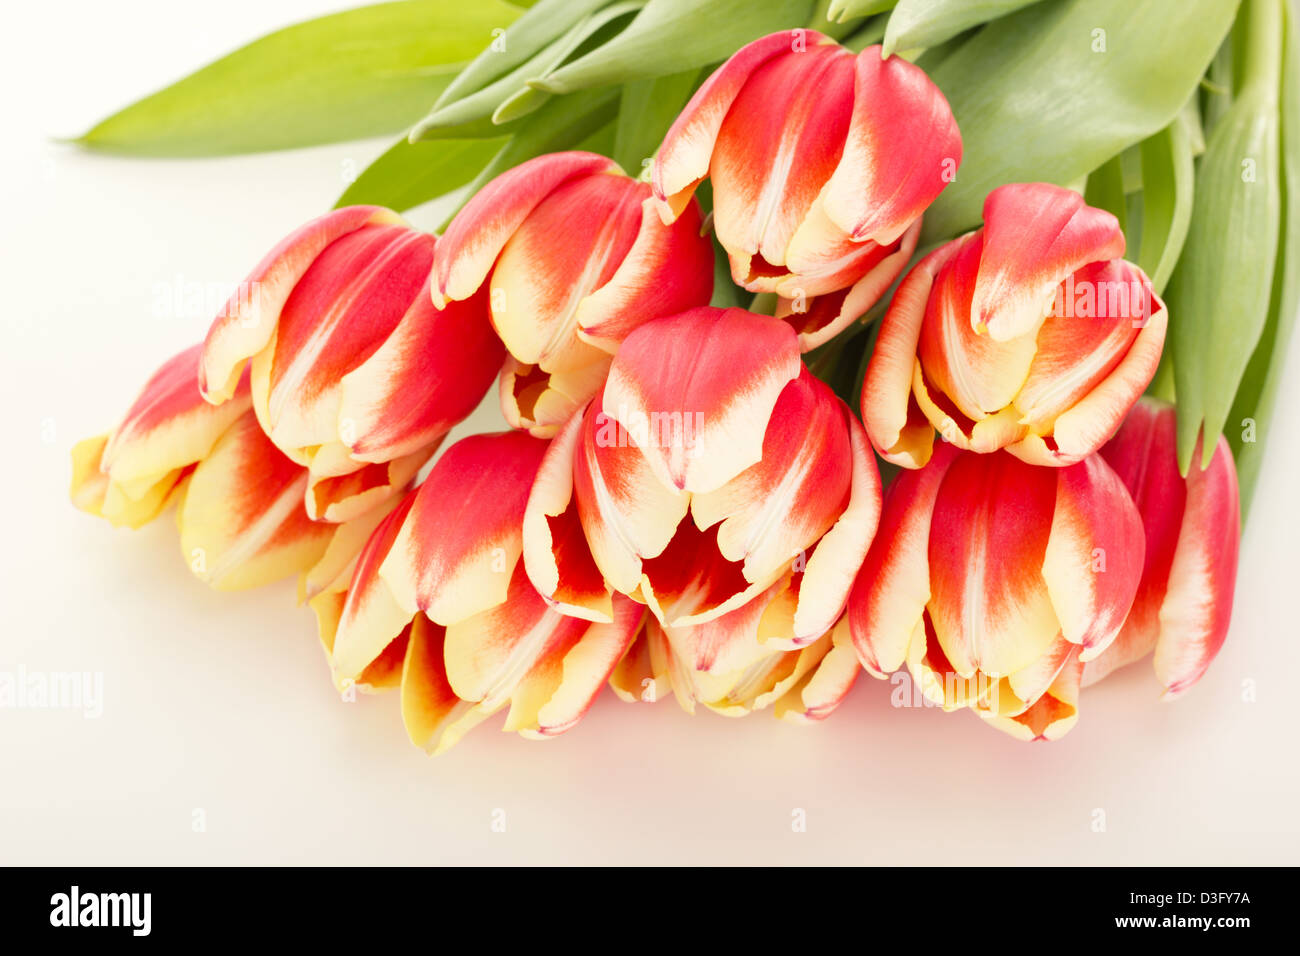 Bunch of tulips - Stock Image